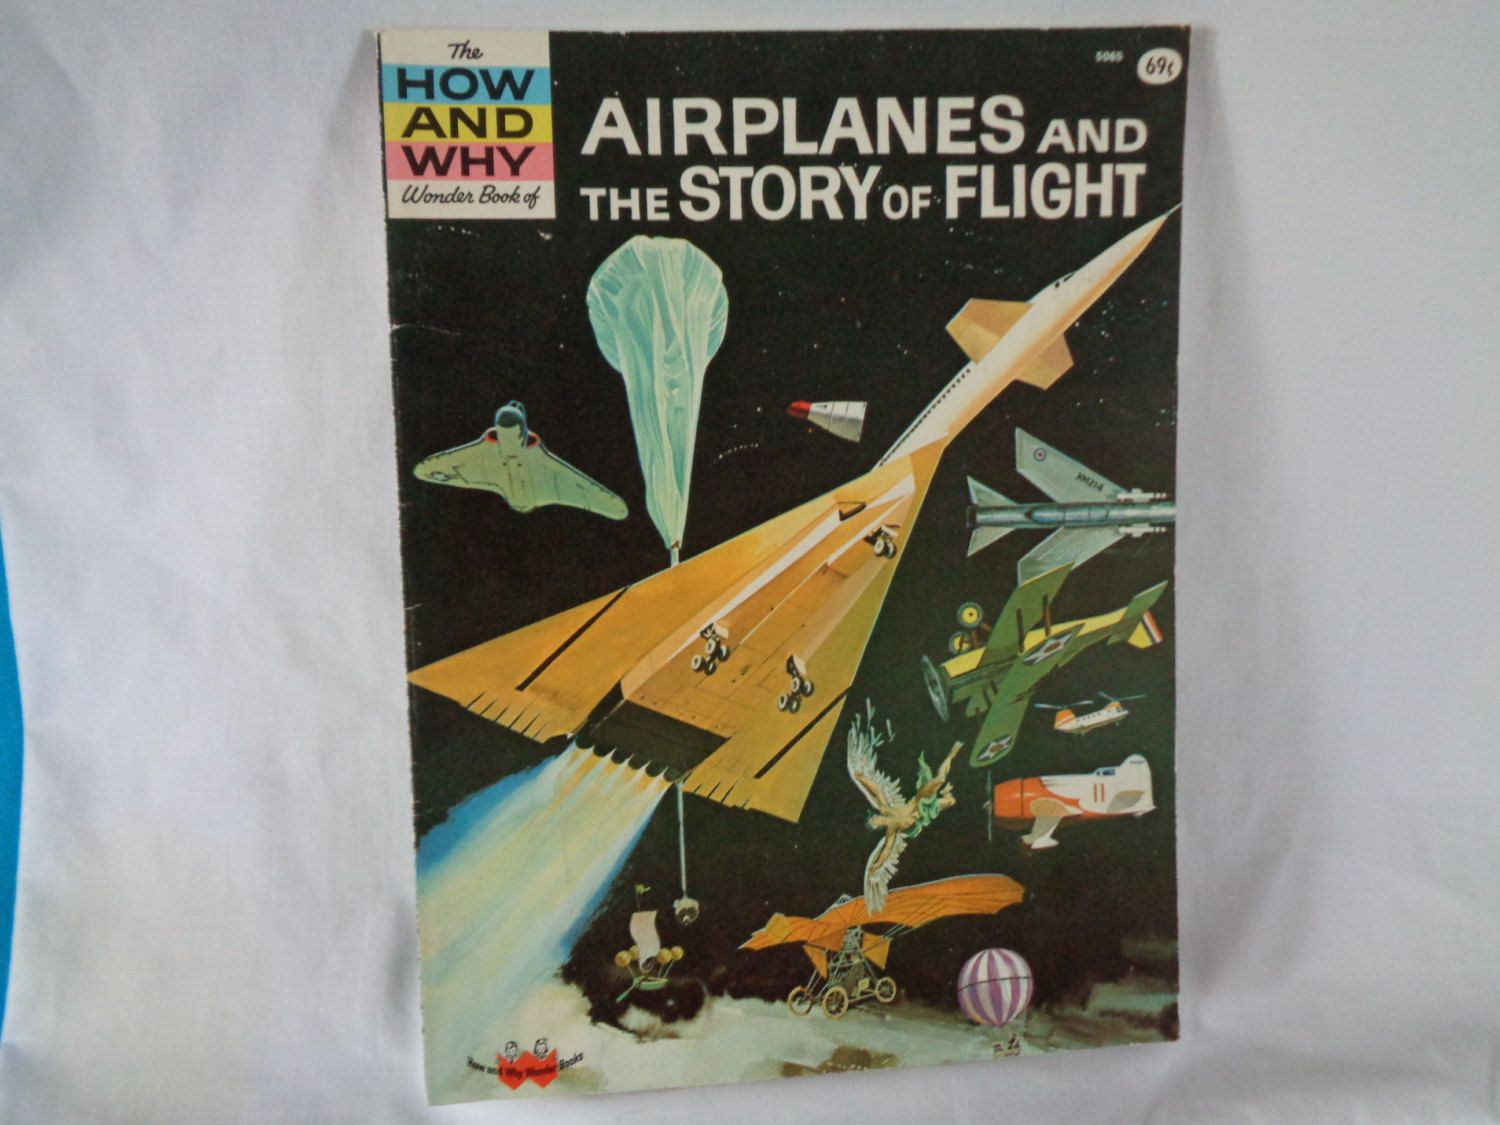 vintage 1973 The How and Why Wonder Book of Airplanes and the Story of Flight book by Harold Joseph Highland by TheVintageKeepers on Etsy